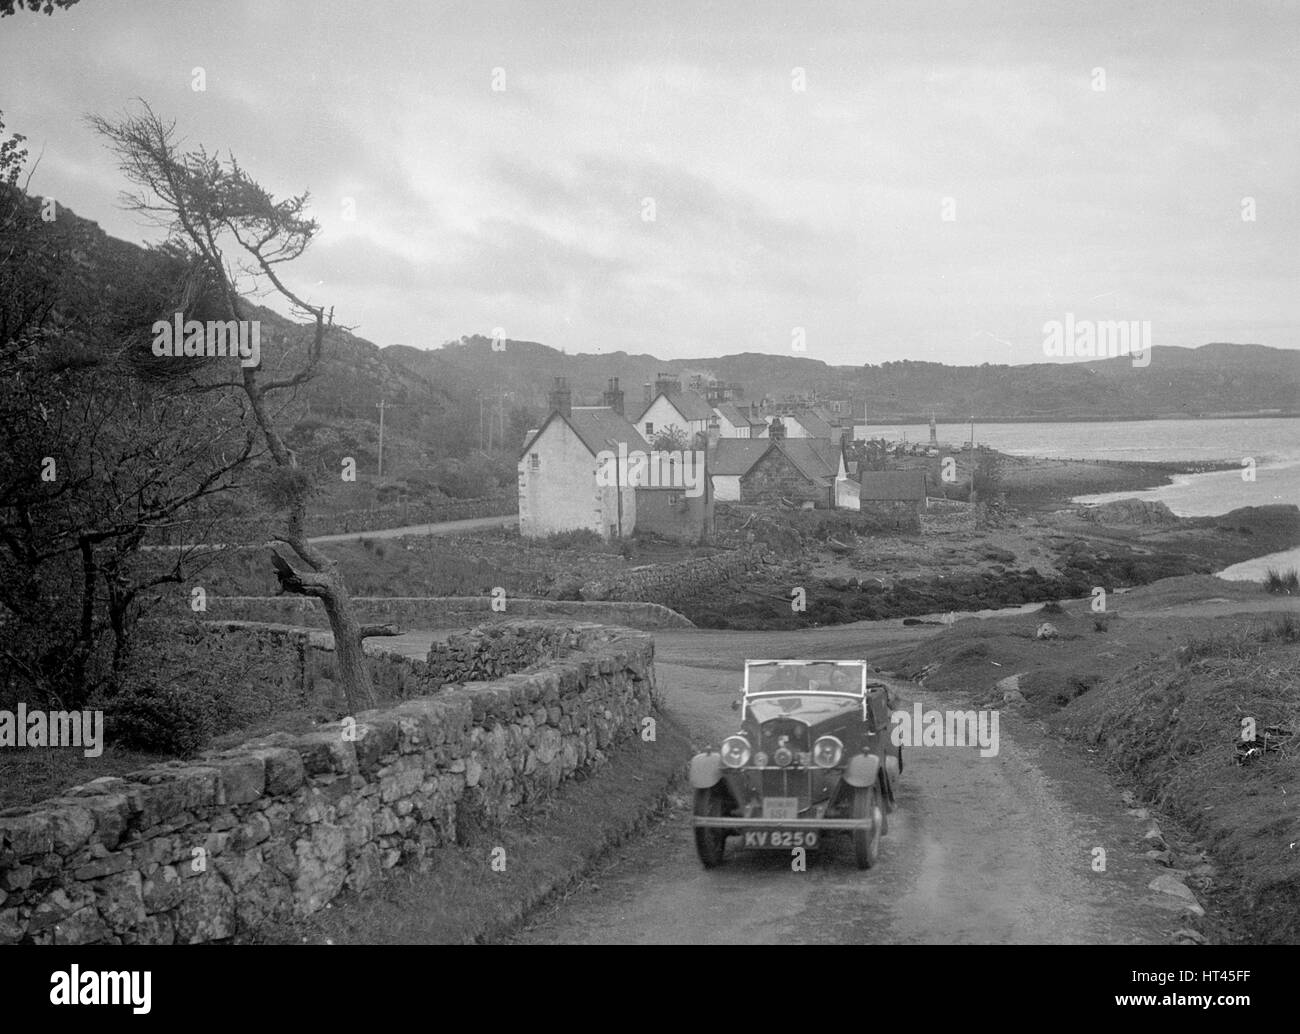 Triumph open tourer of Joan Richmond competing in the RSAC Scottish Rally, 1934. Artist: Bill Brunell. - Stock Image